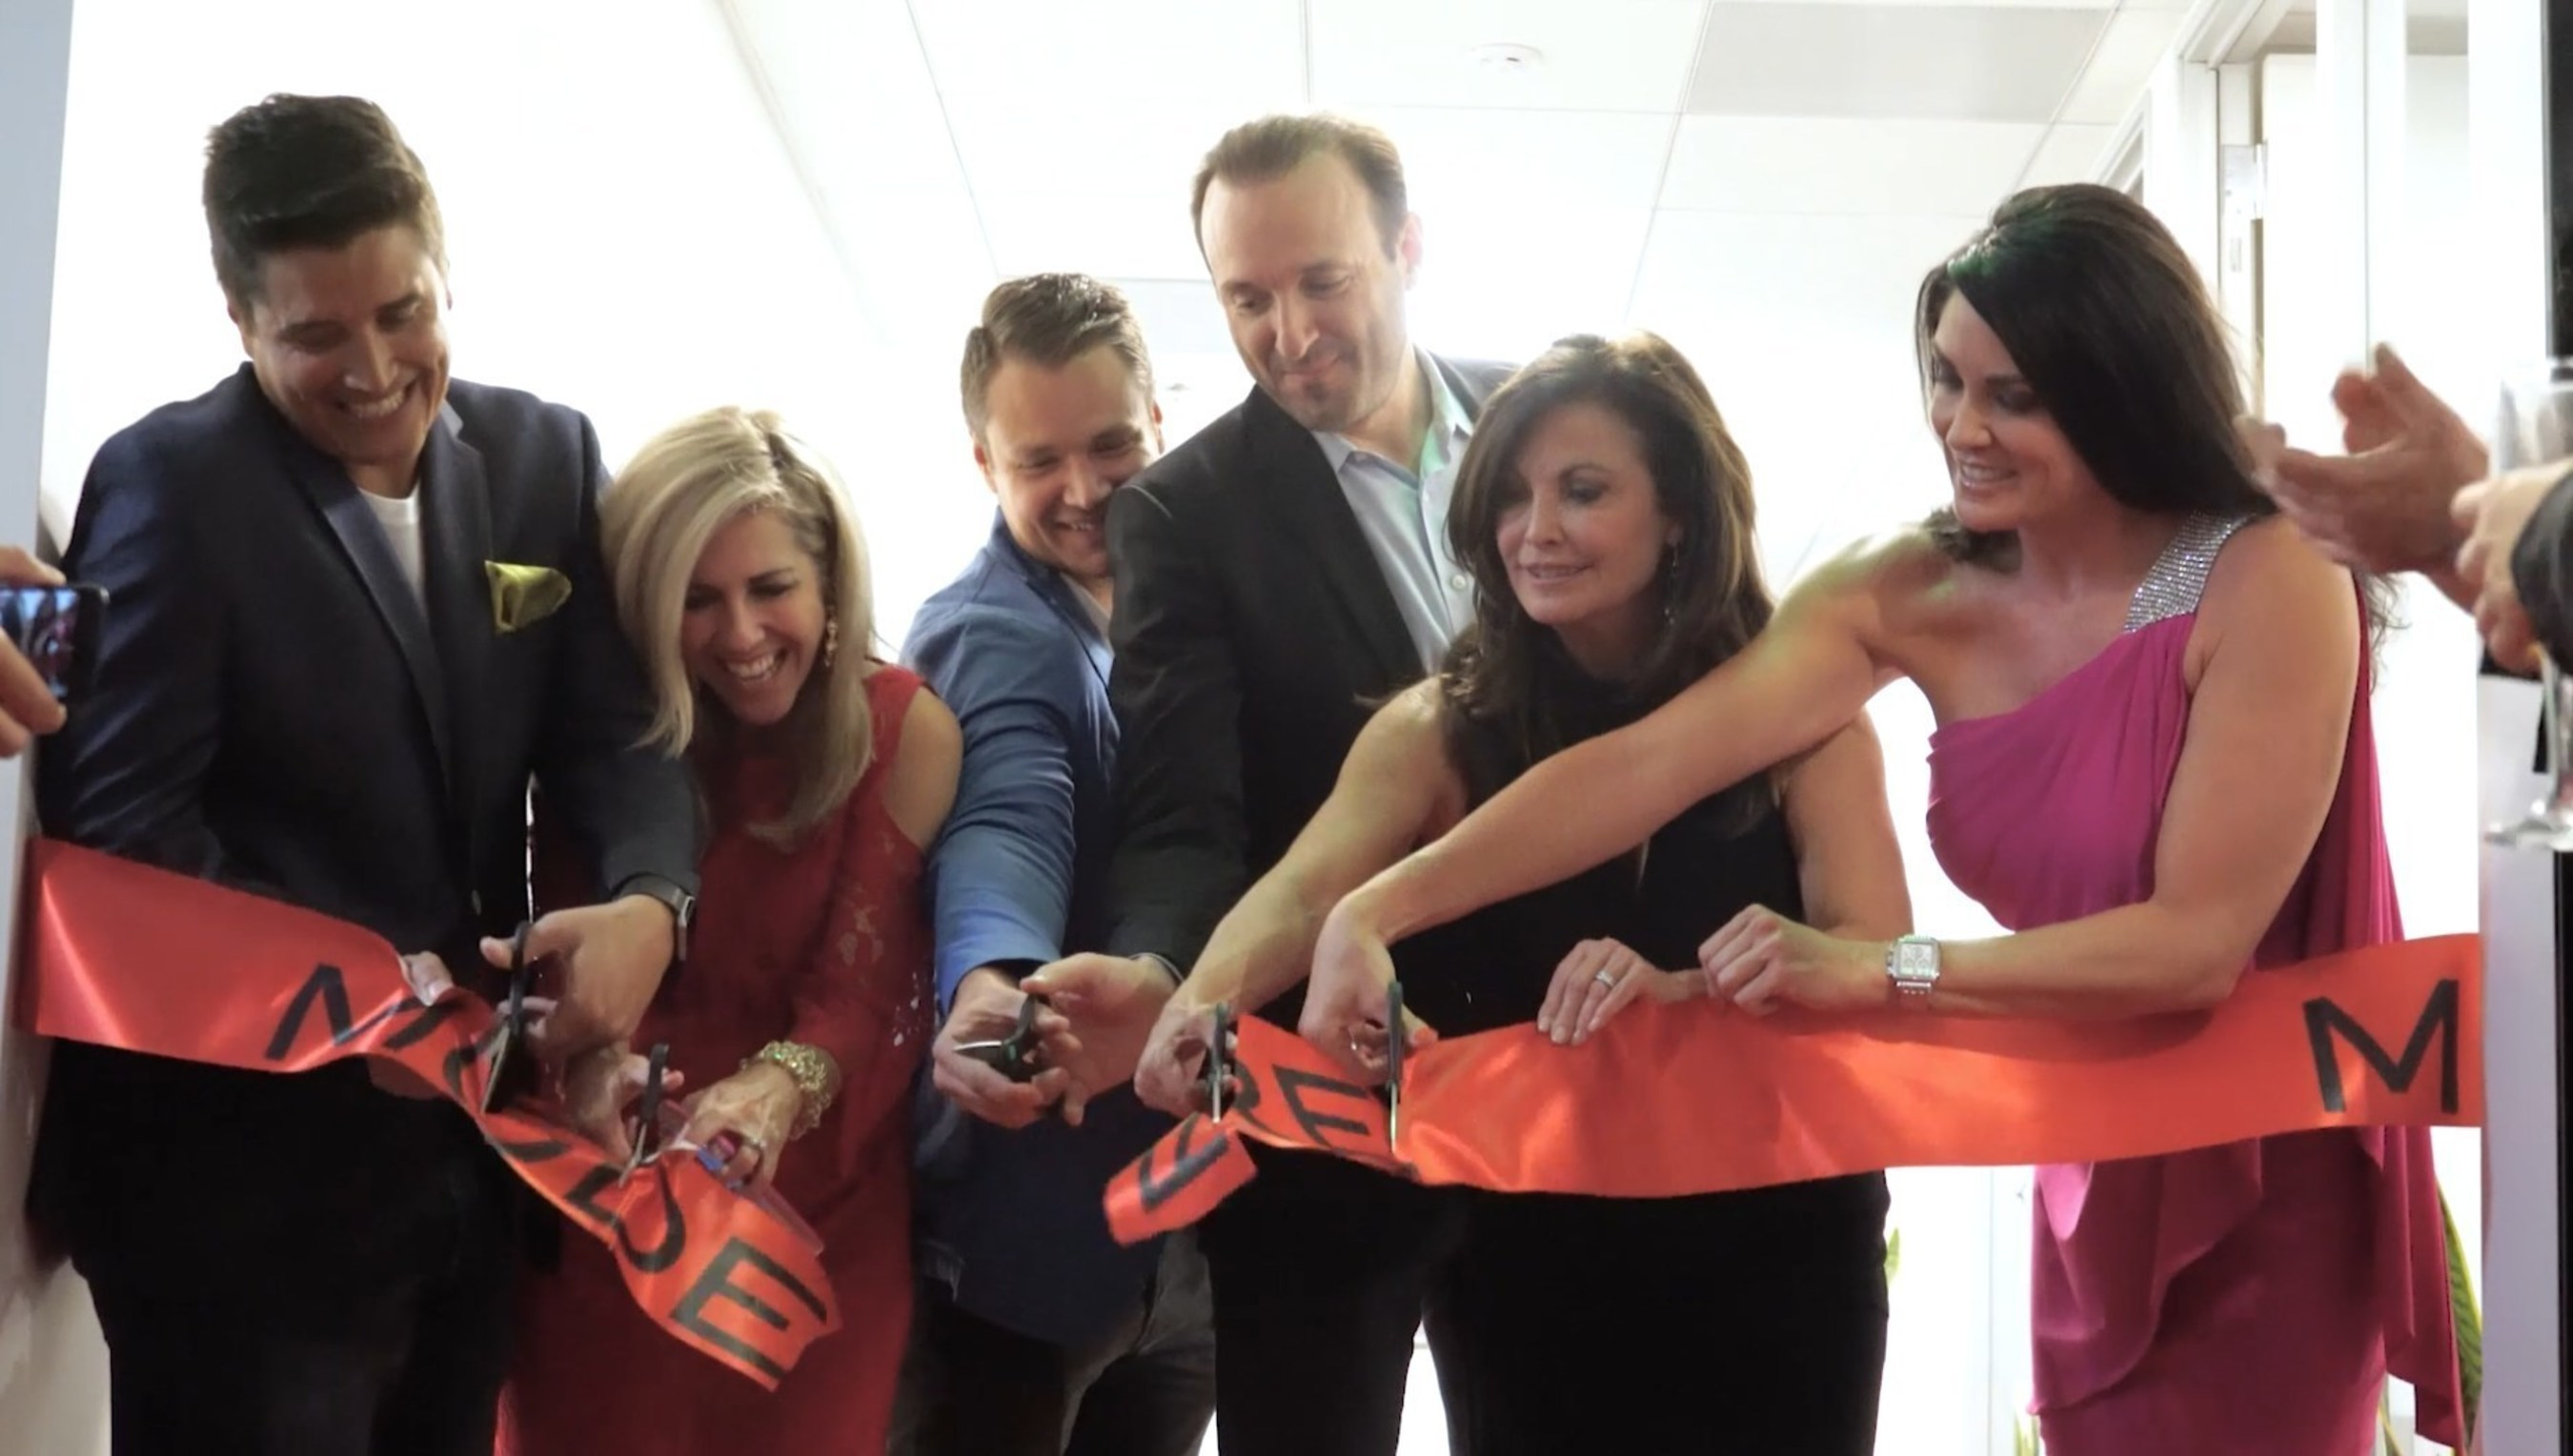 Ribbon cutting at Modere